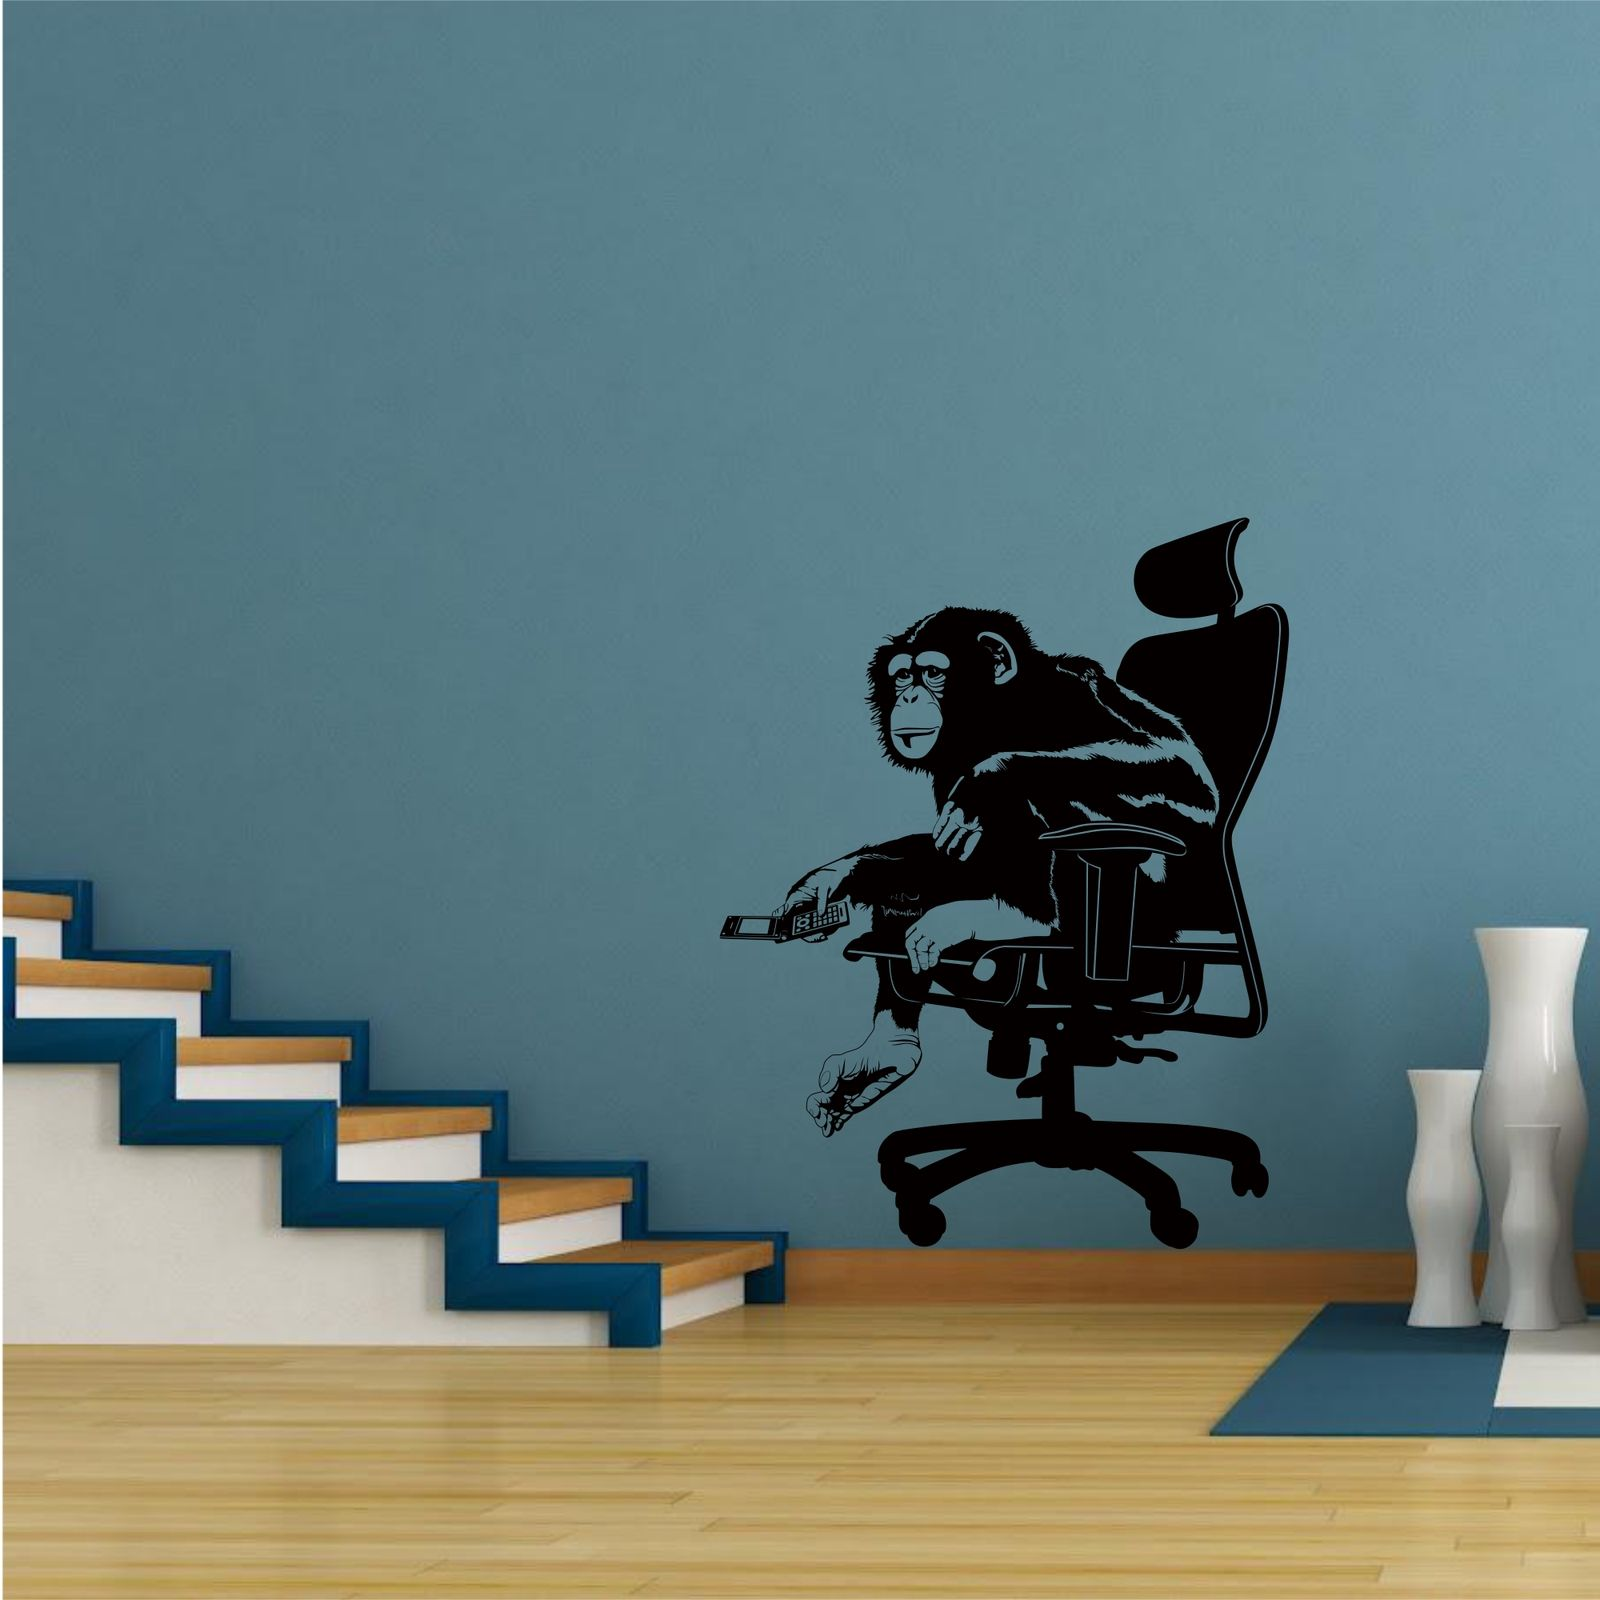 Office monkey chimp animal wall art wall sticker decal mural ...